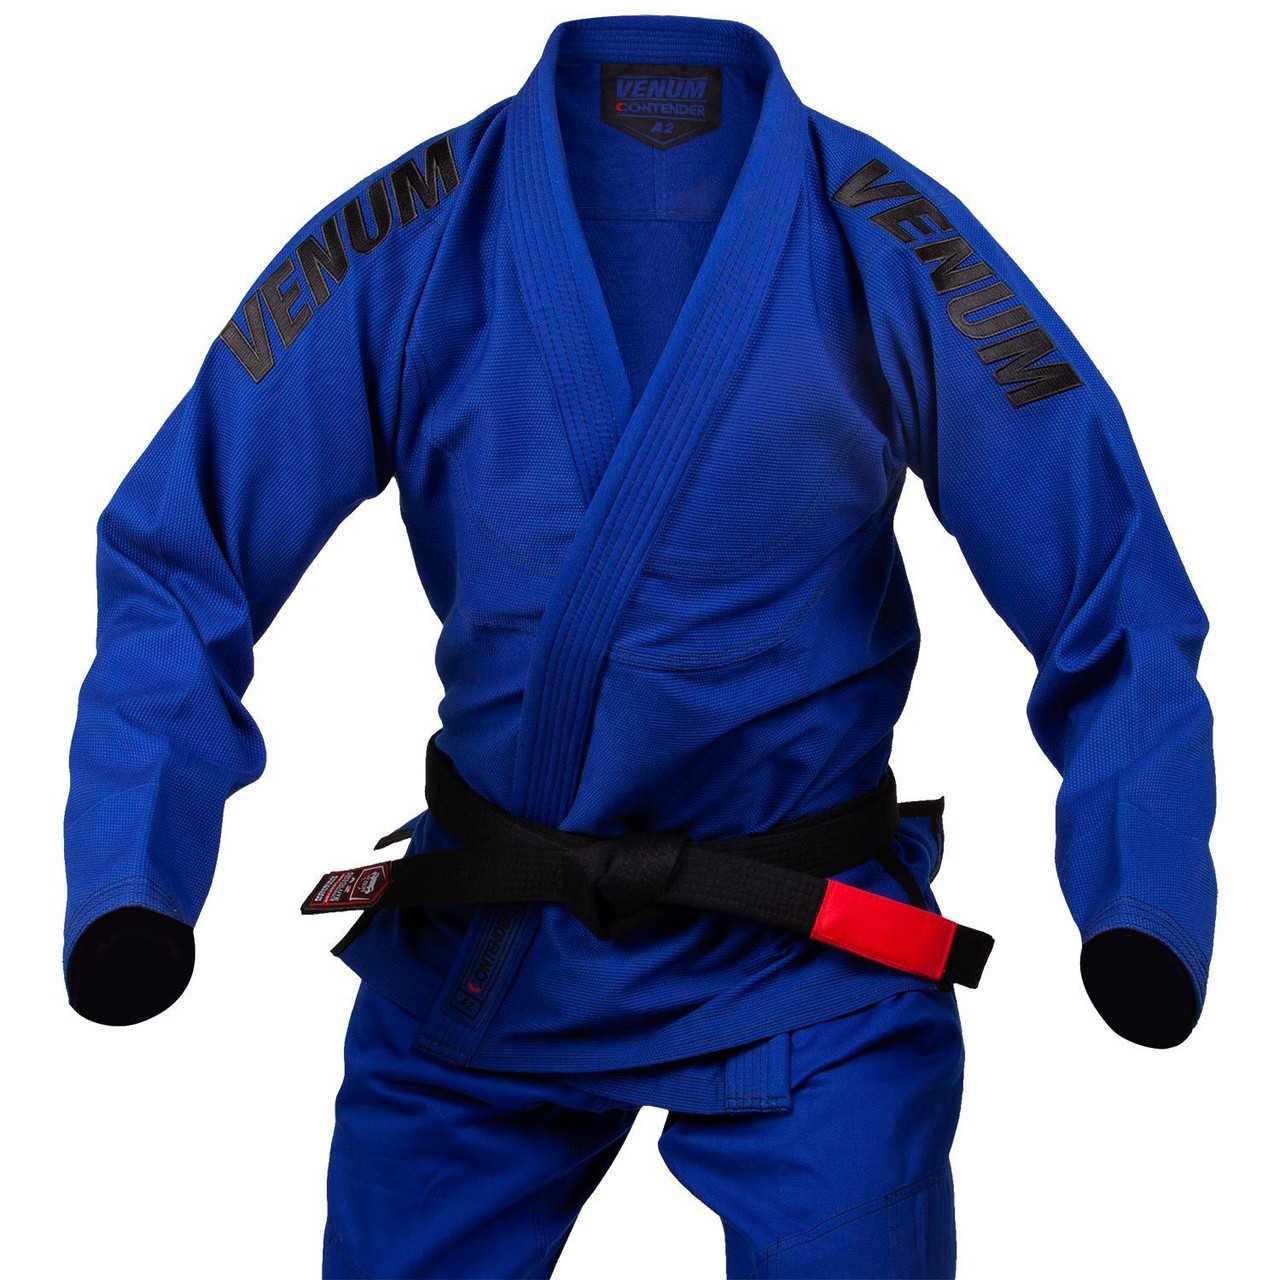 Royal Blue Venum Mens Contender 2.0 BJJ Gi